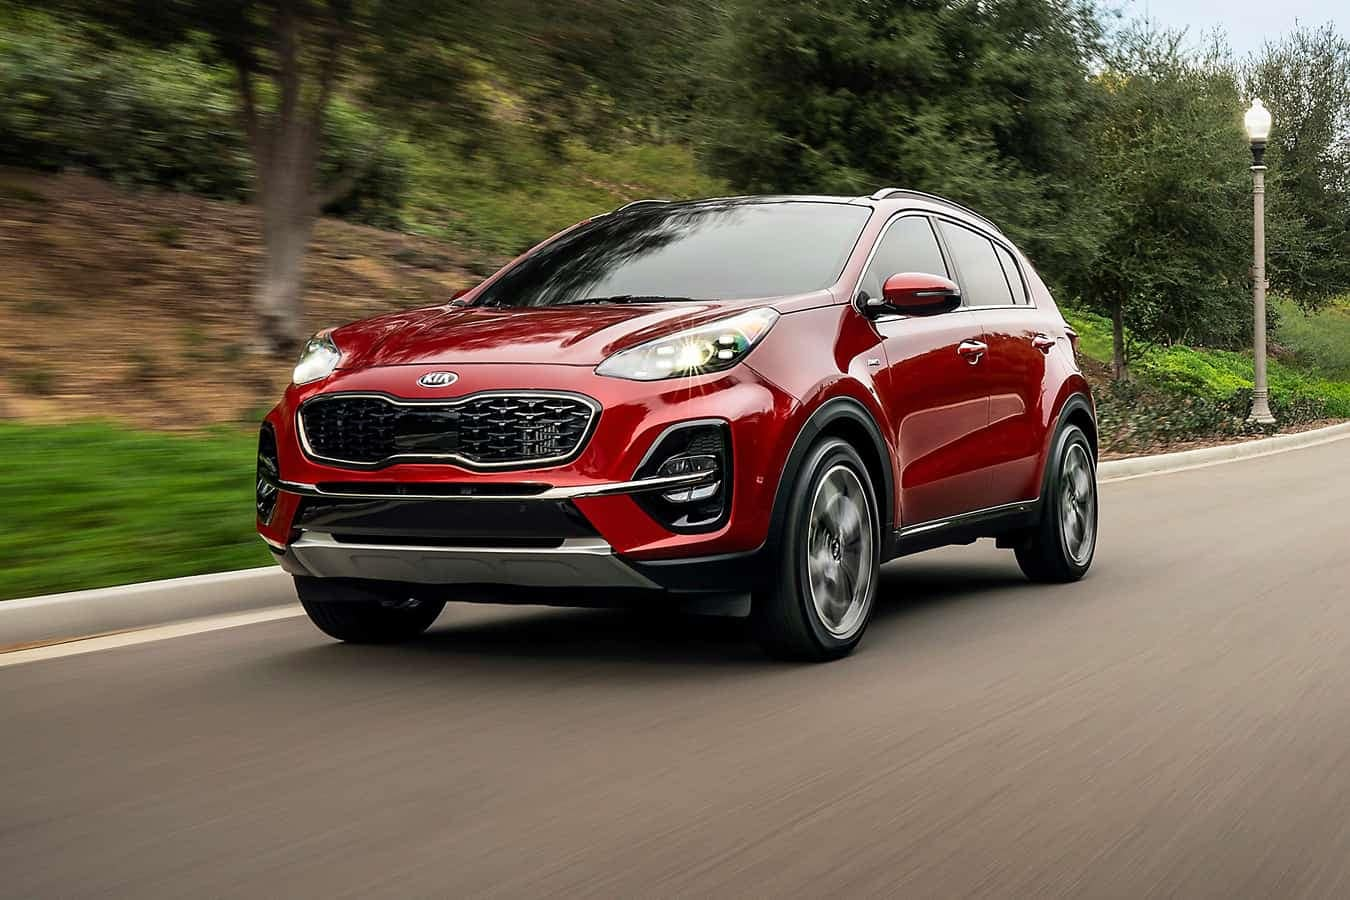 Kia President's Day Specials near Detroit MI